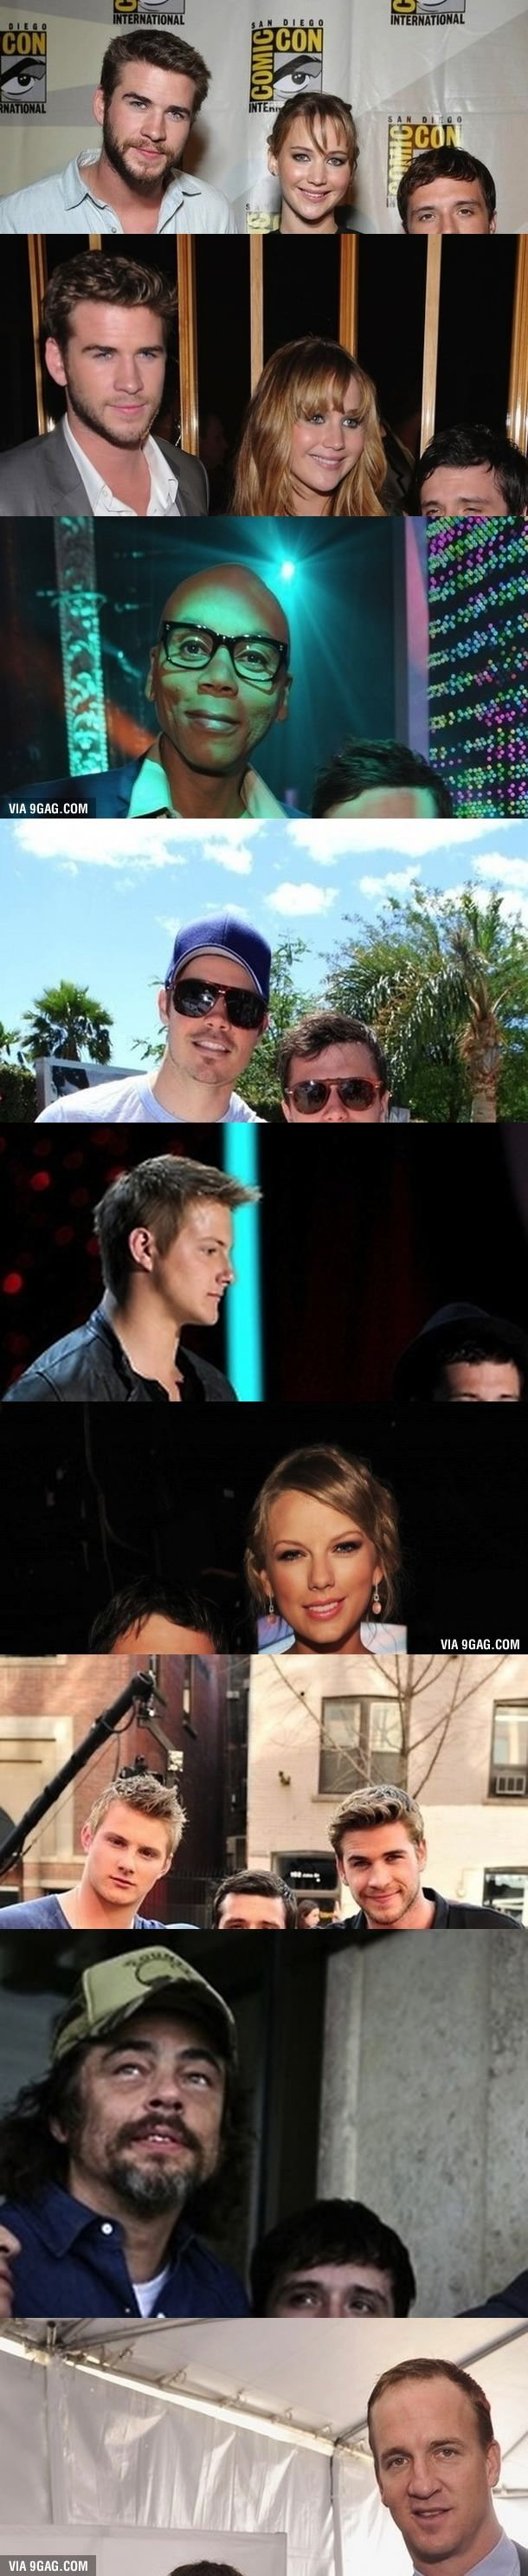 Josh Hutcherson with other celebrities. I'm dying